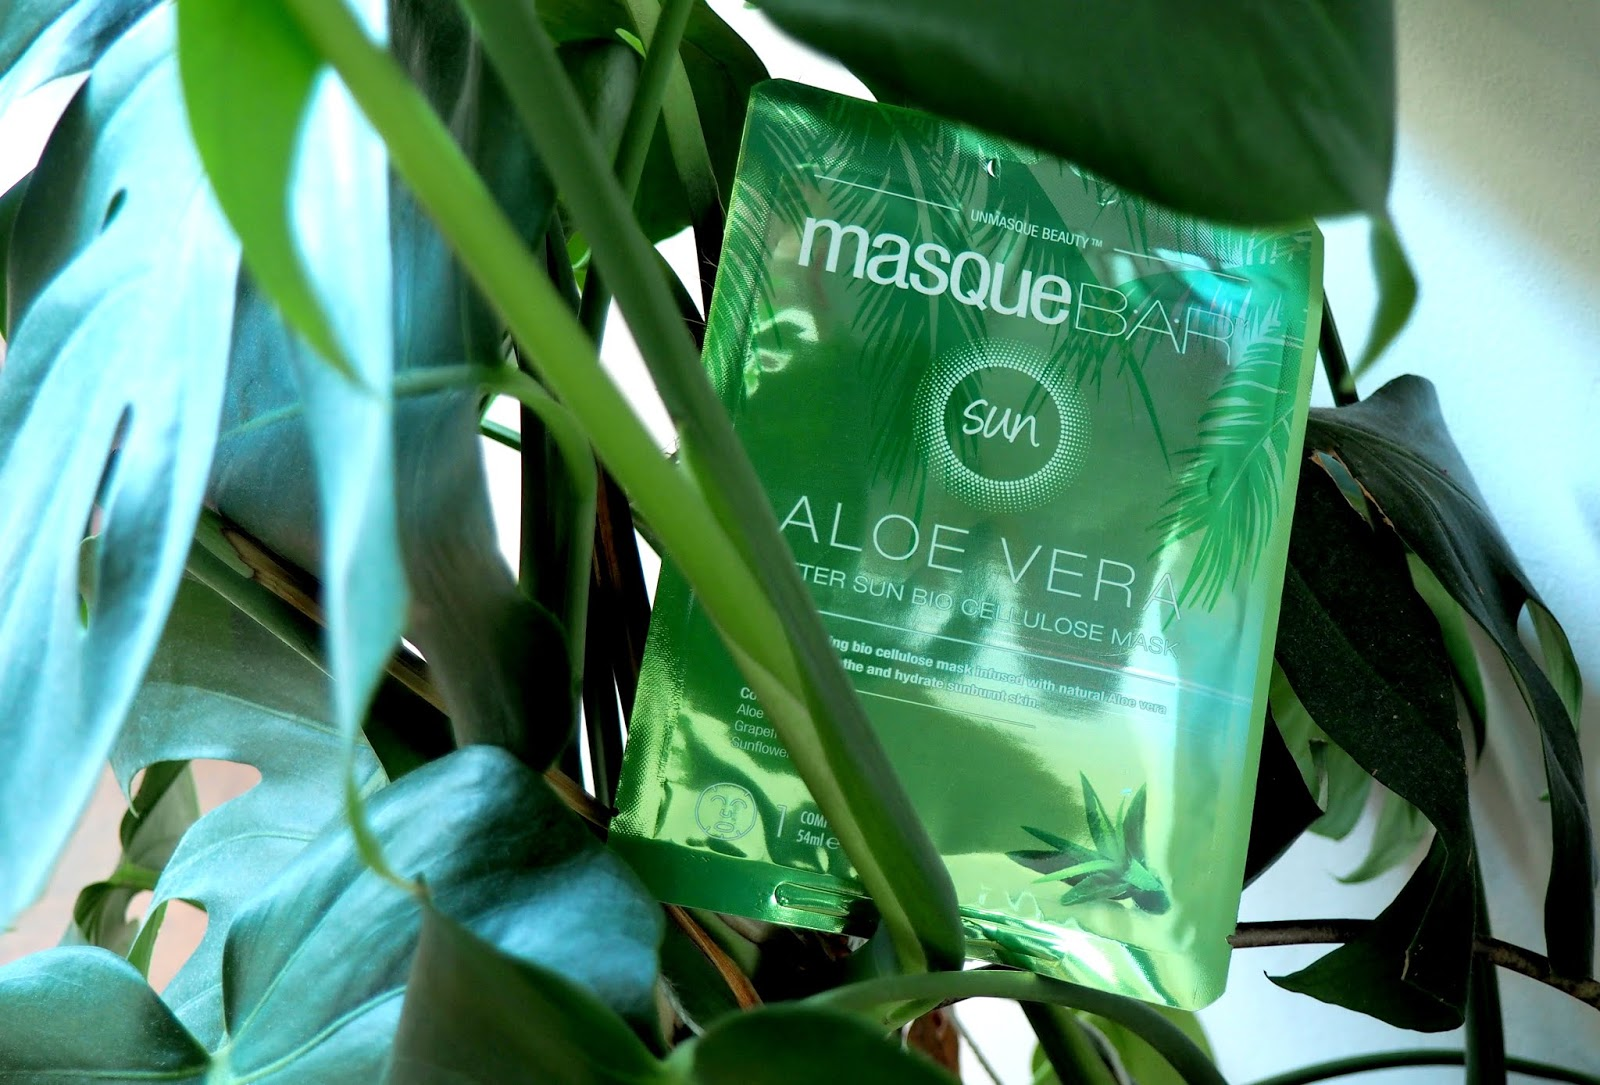 Masque-Bar-Aloe-Vera-After-Sun-Bio-Cellulose-Mask-review